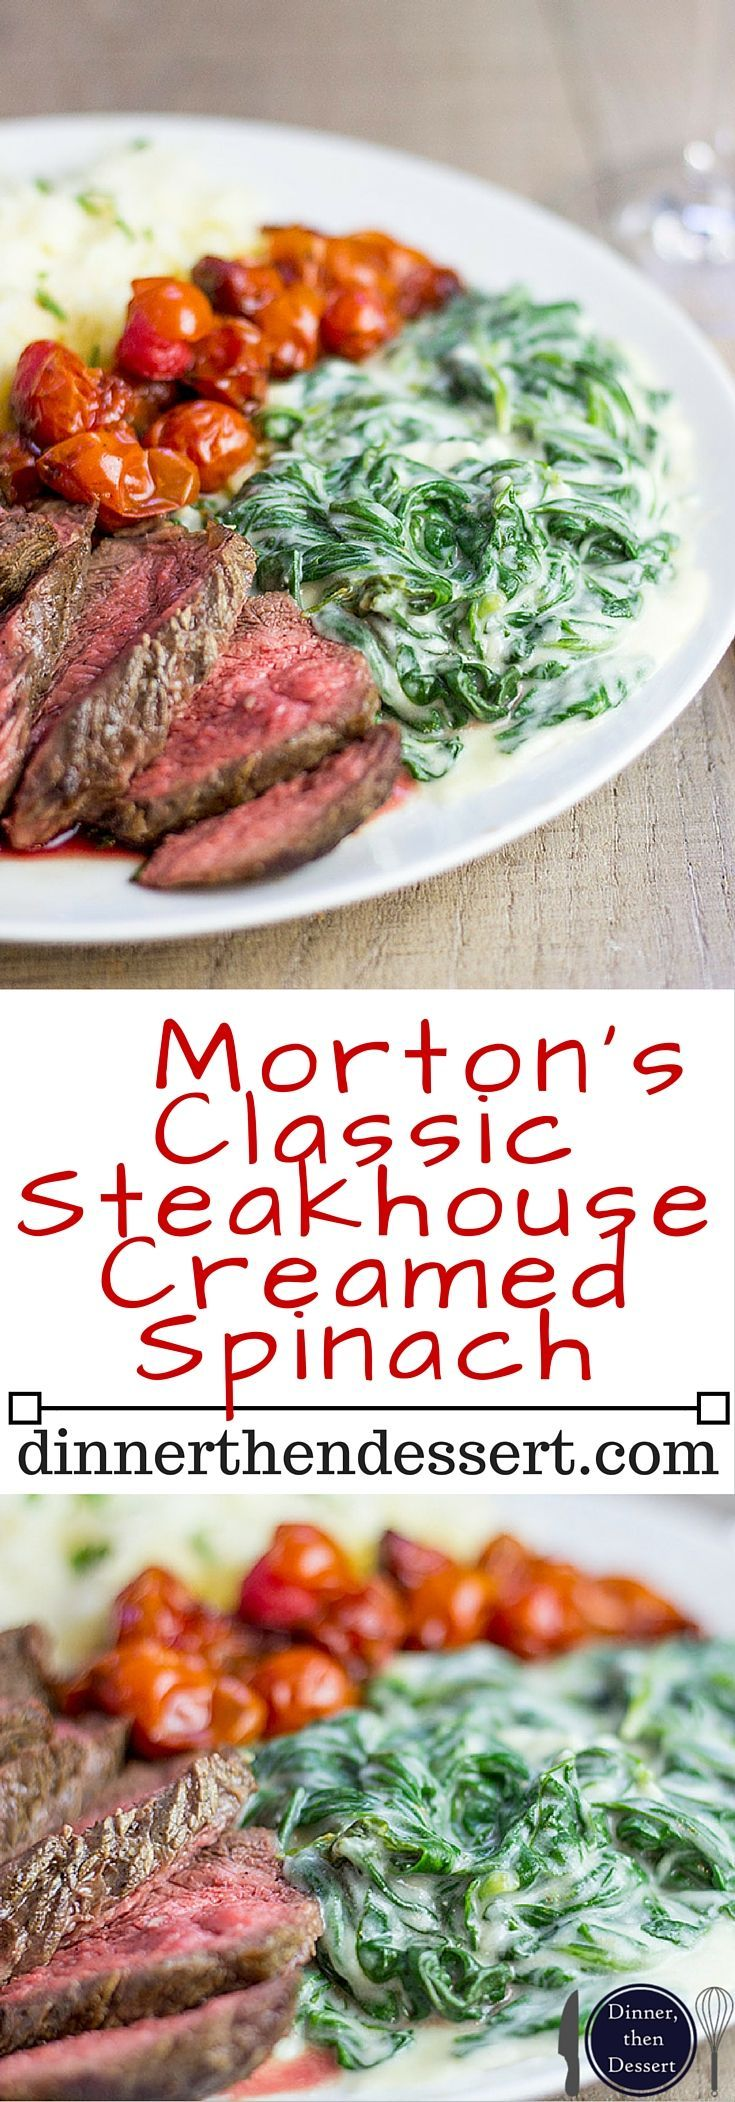 Creamy, rich Classic Steakhouse Creamed Spinach that takes just a few minutes and is the perfect side for a holiday roast or prime rib.